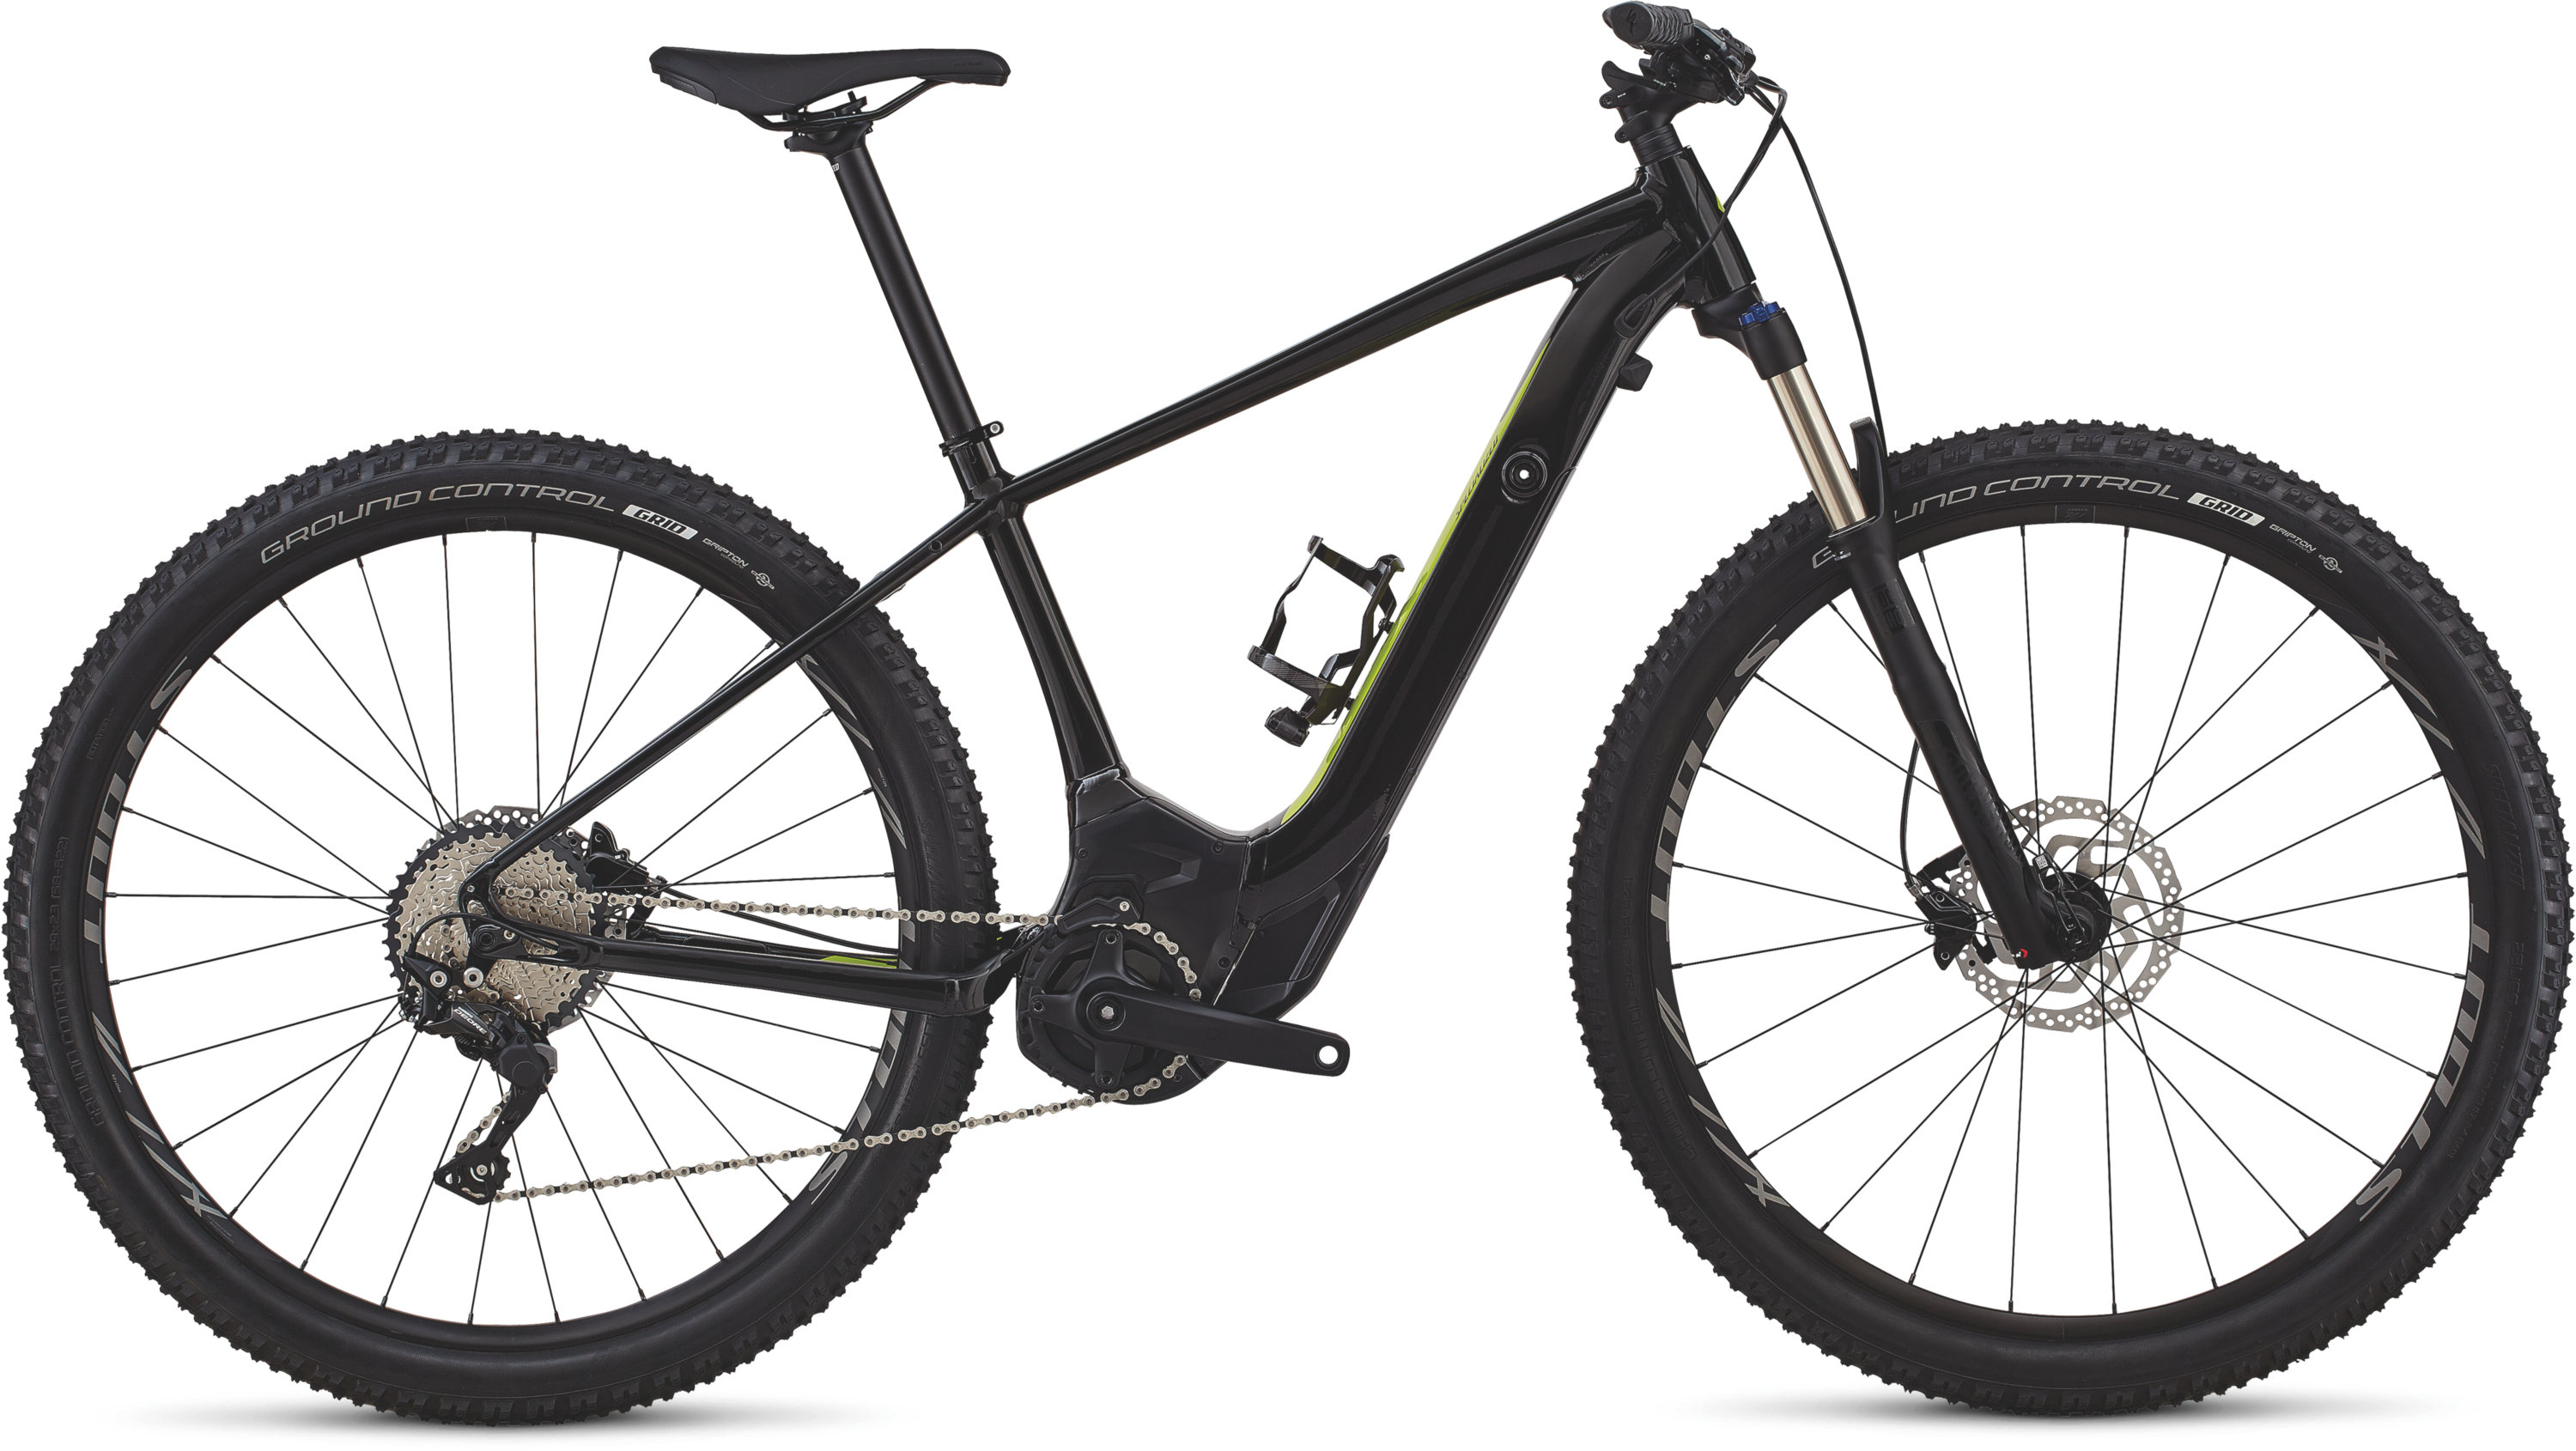 Specialized Men´s Turbo Levo Hardtail 29 Black / Hyper XL - schneider-sports